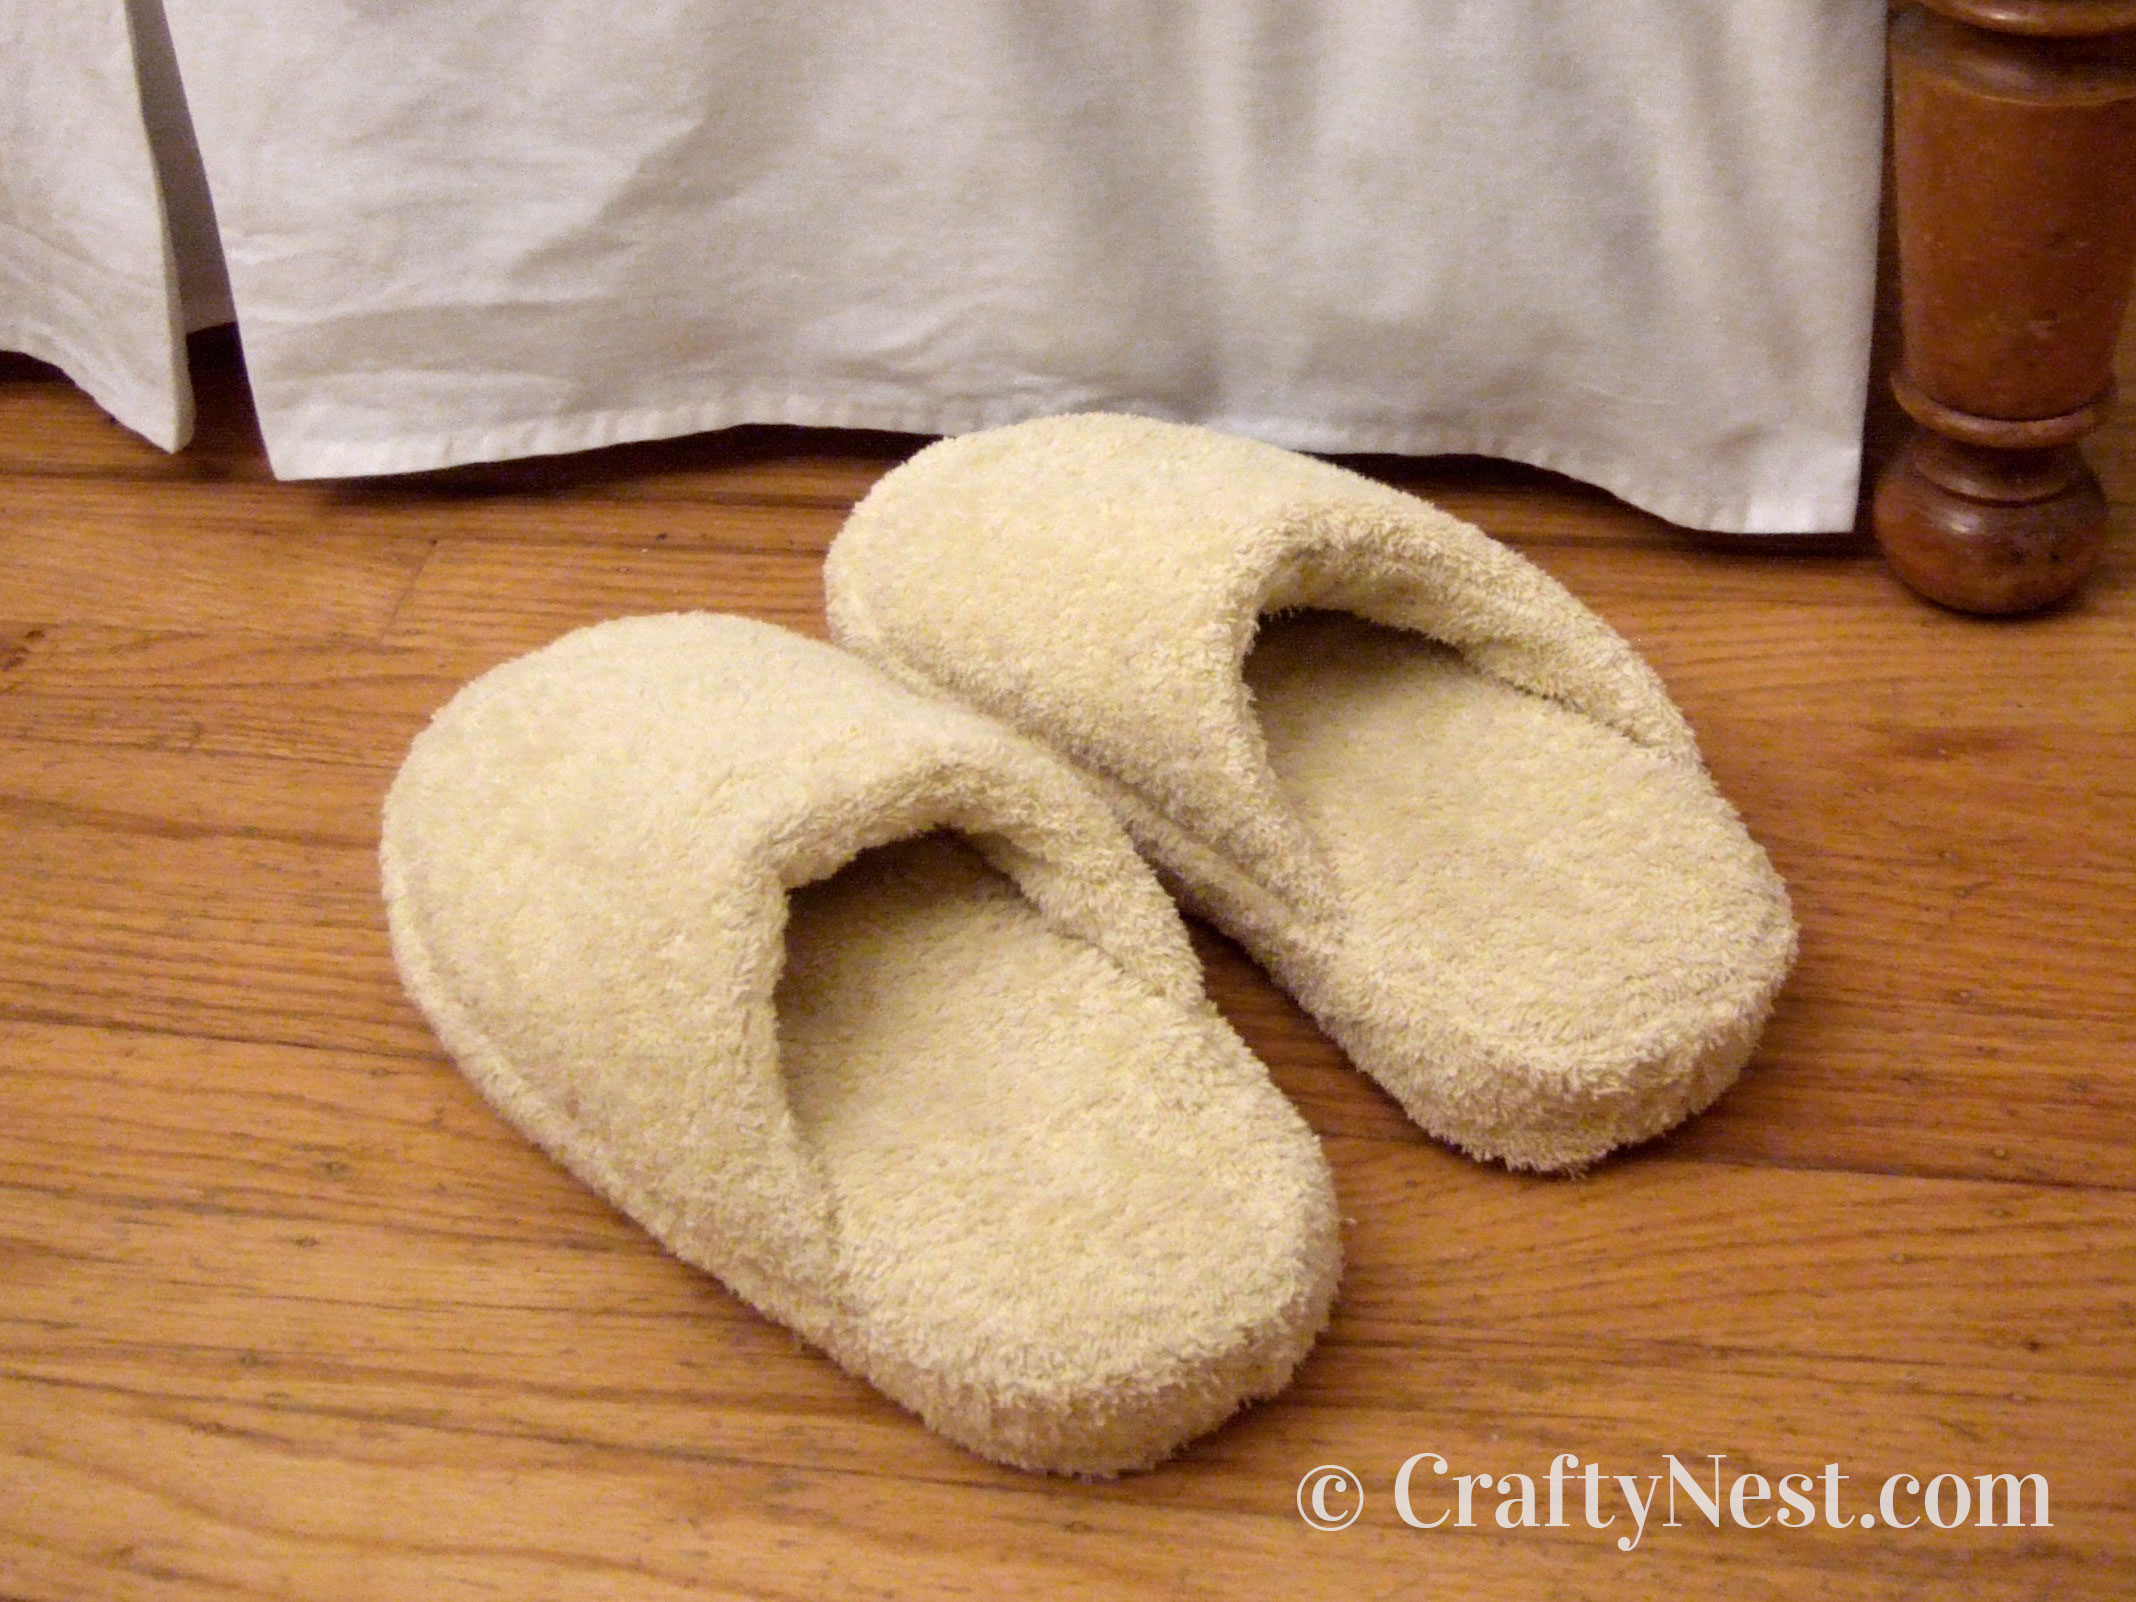 Handmade terrycloth slippers next to a bed, photo